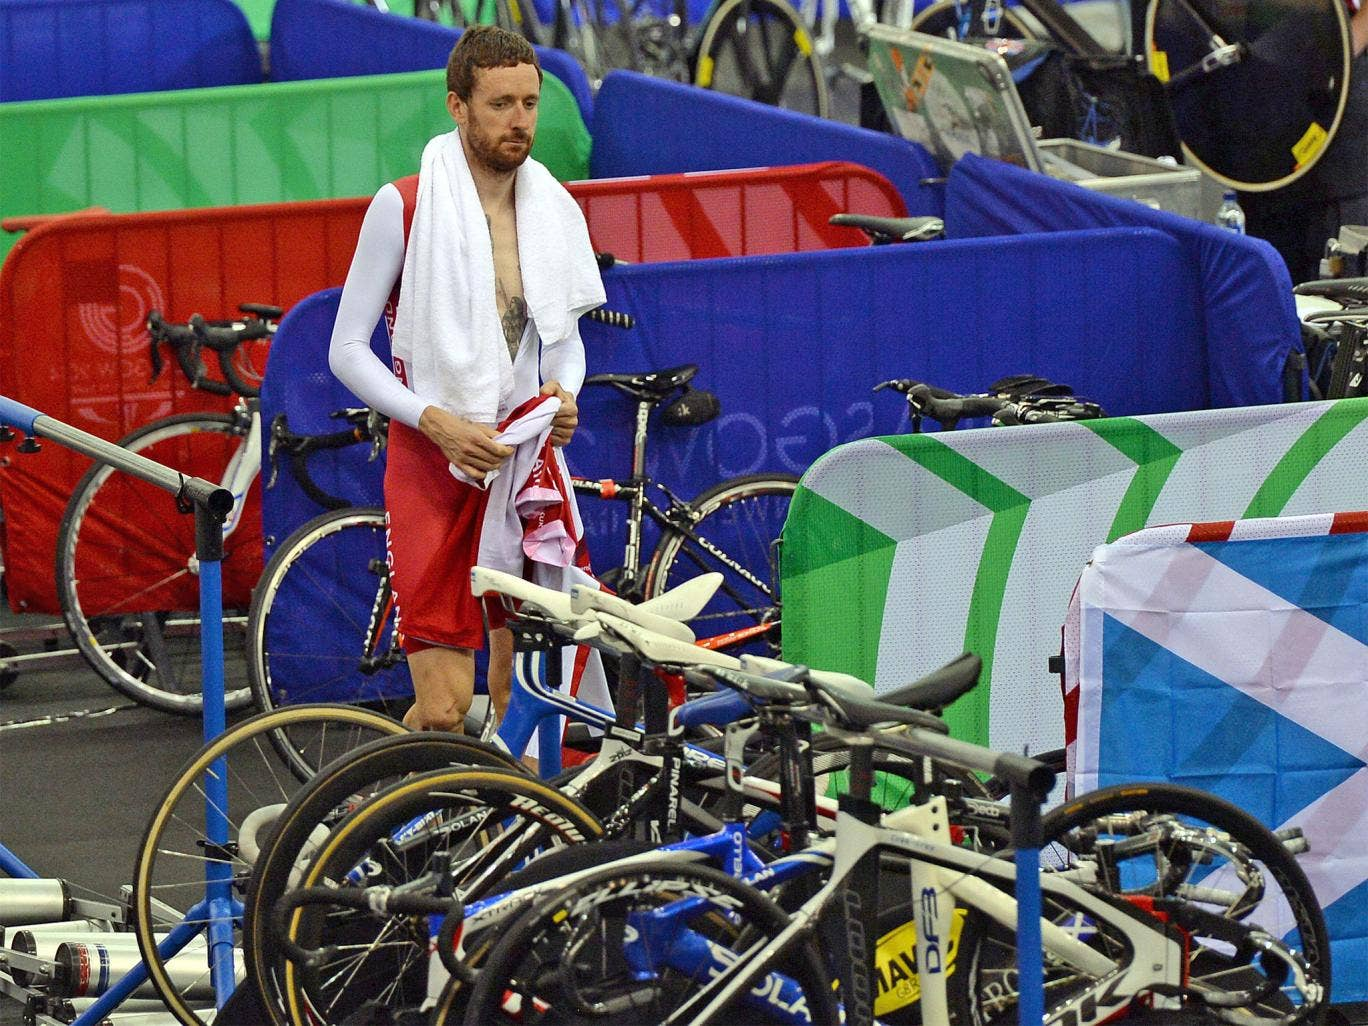 Sir Bradley Wiggins in contemplative mood during training this week